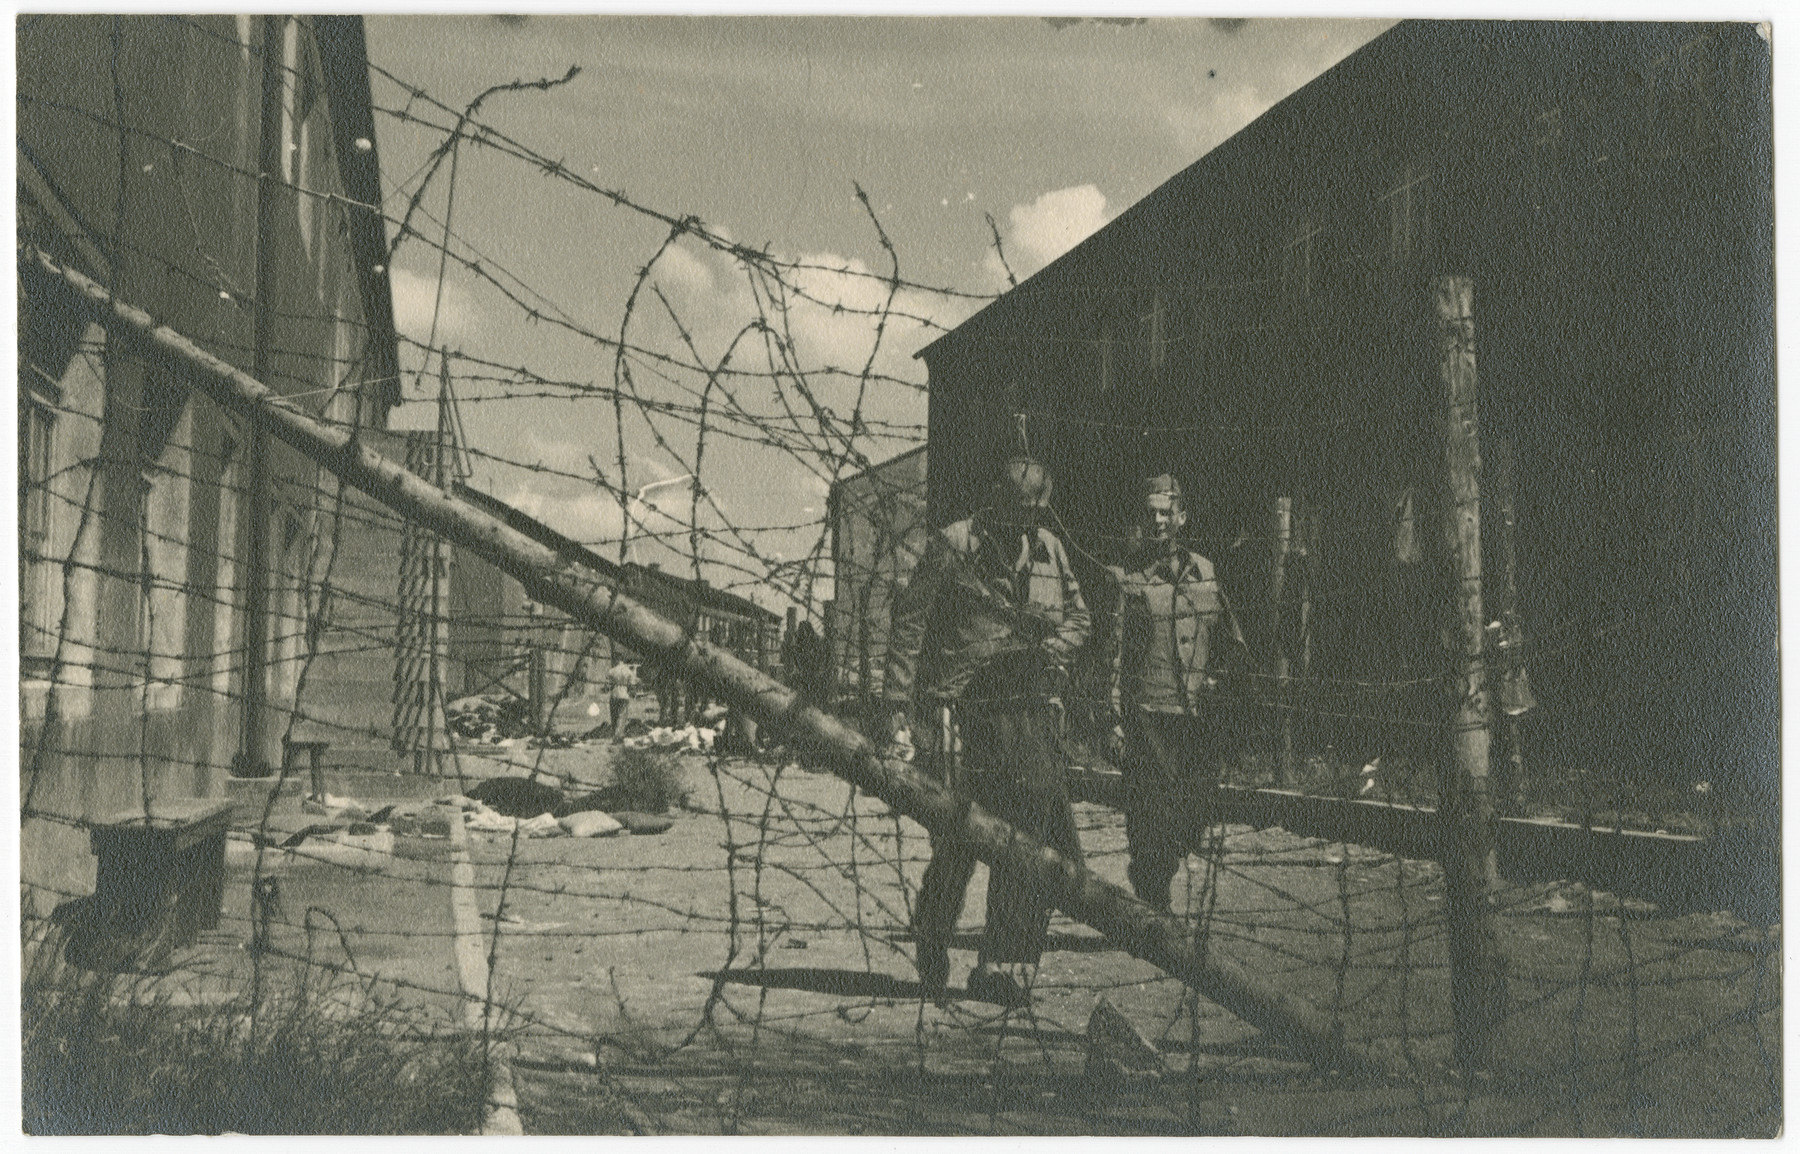 Two survivors of the Buchenwald concentration camp walk between the barracks in front of the barbed wire fence following liberation.